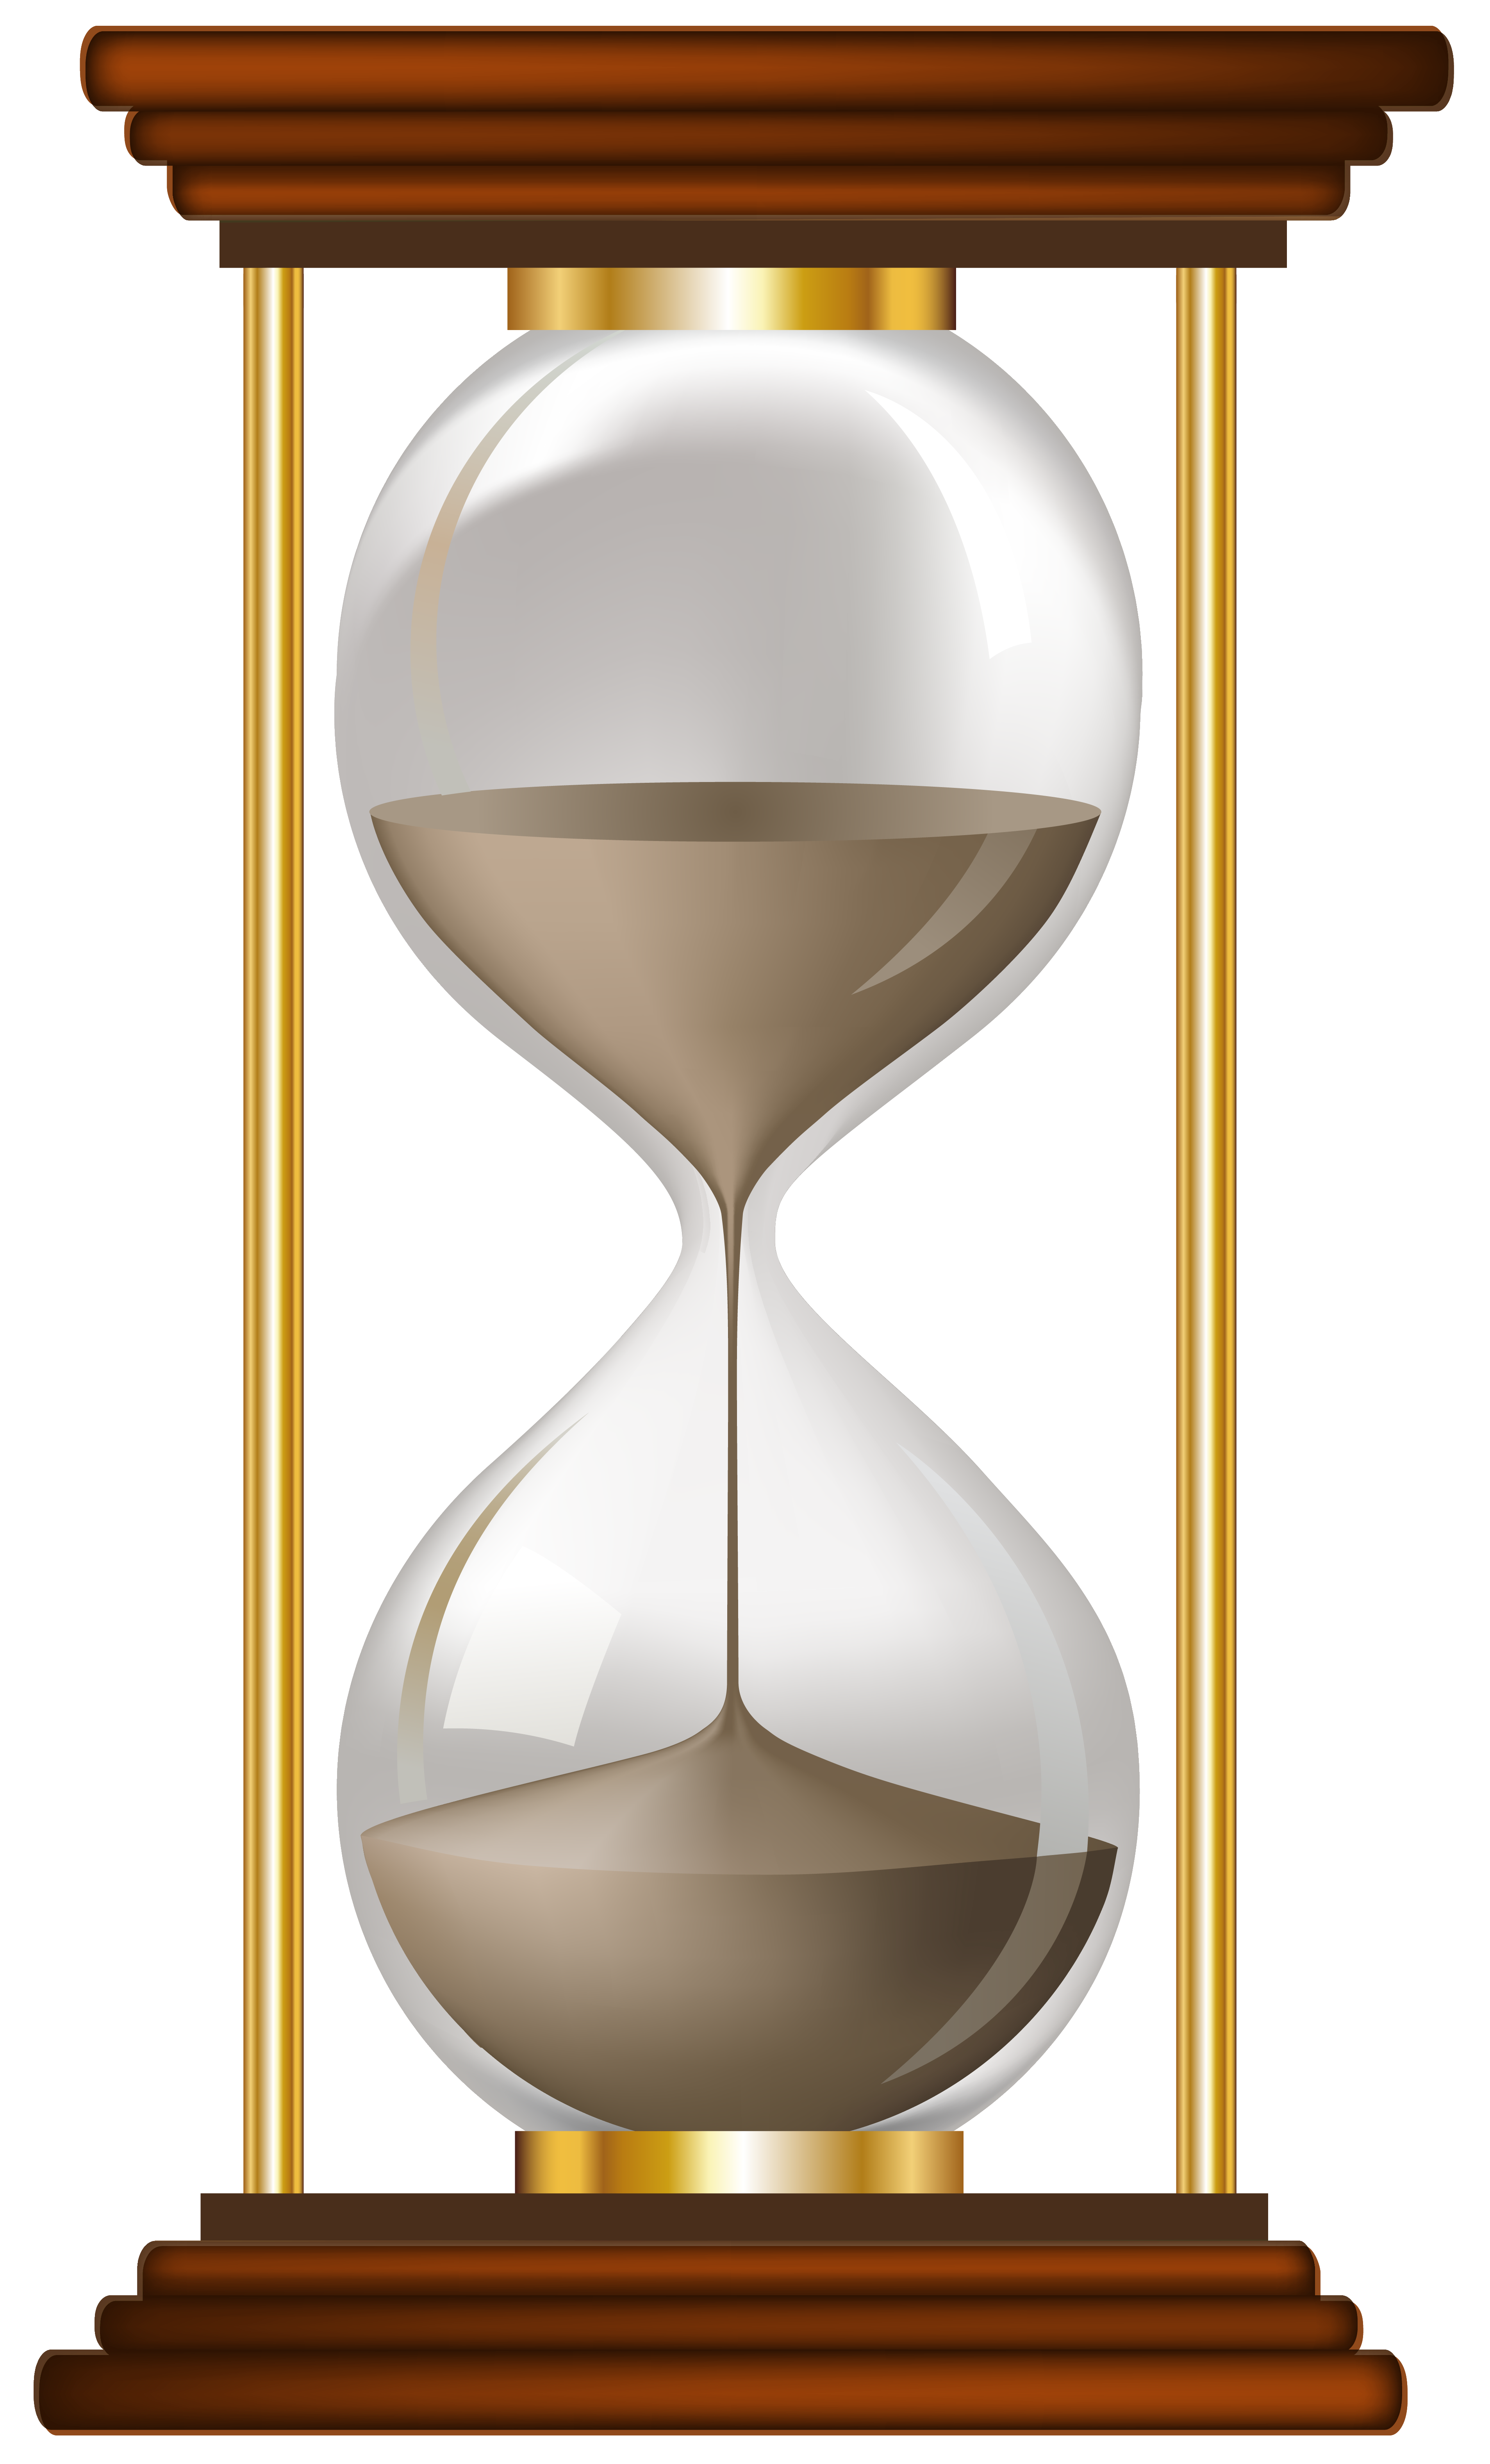 Stock Photo Old Clock Dial Isolated White Image57144202 moreover Old Vintage Midnight Clock in addition Royalty Free Stock Photo Tempus Fugit Clock Face Image1814515 furthermore 309833649349952005 together with Royalty Free Stock Image Antique Clock Face Isolated Vintage Victorian Old Roman Numerals Image40641116. on grandfather clock vector